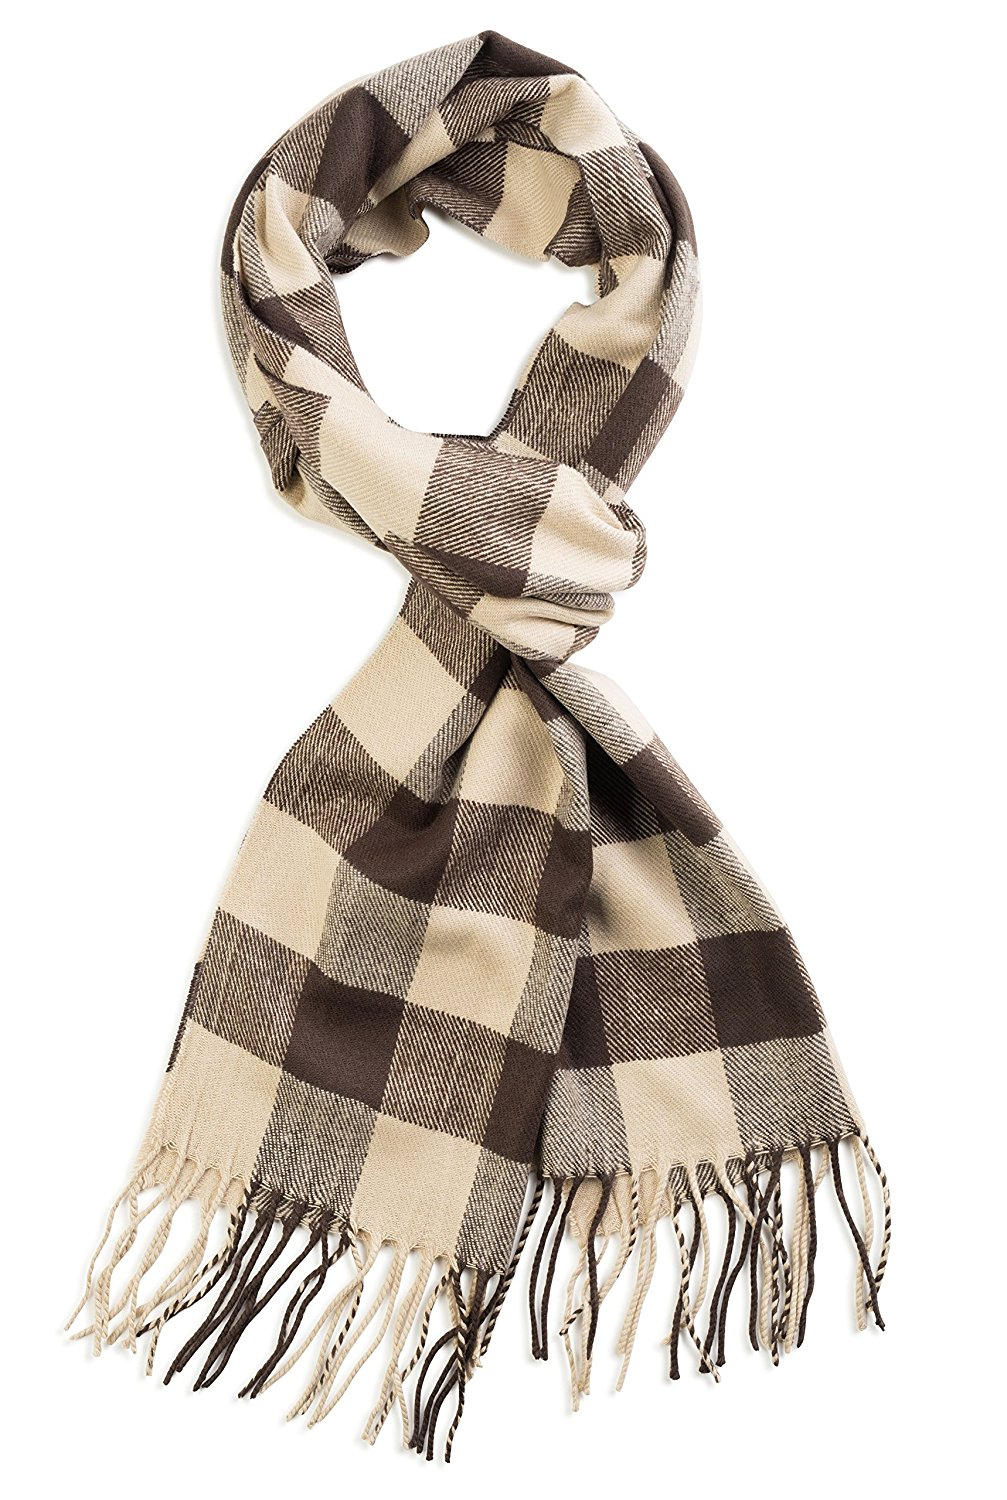 Cashmere Scarf - This scarf summons images of classic starlets traveling in convertible cars alongside their leading men.